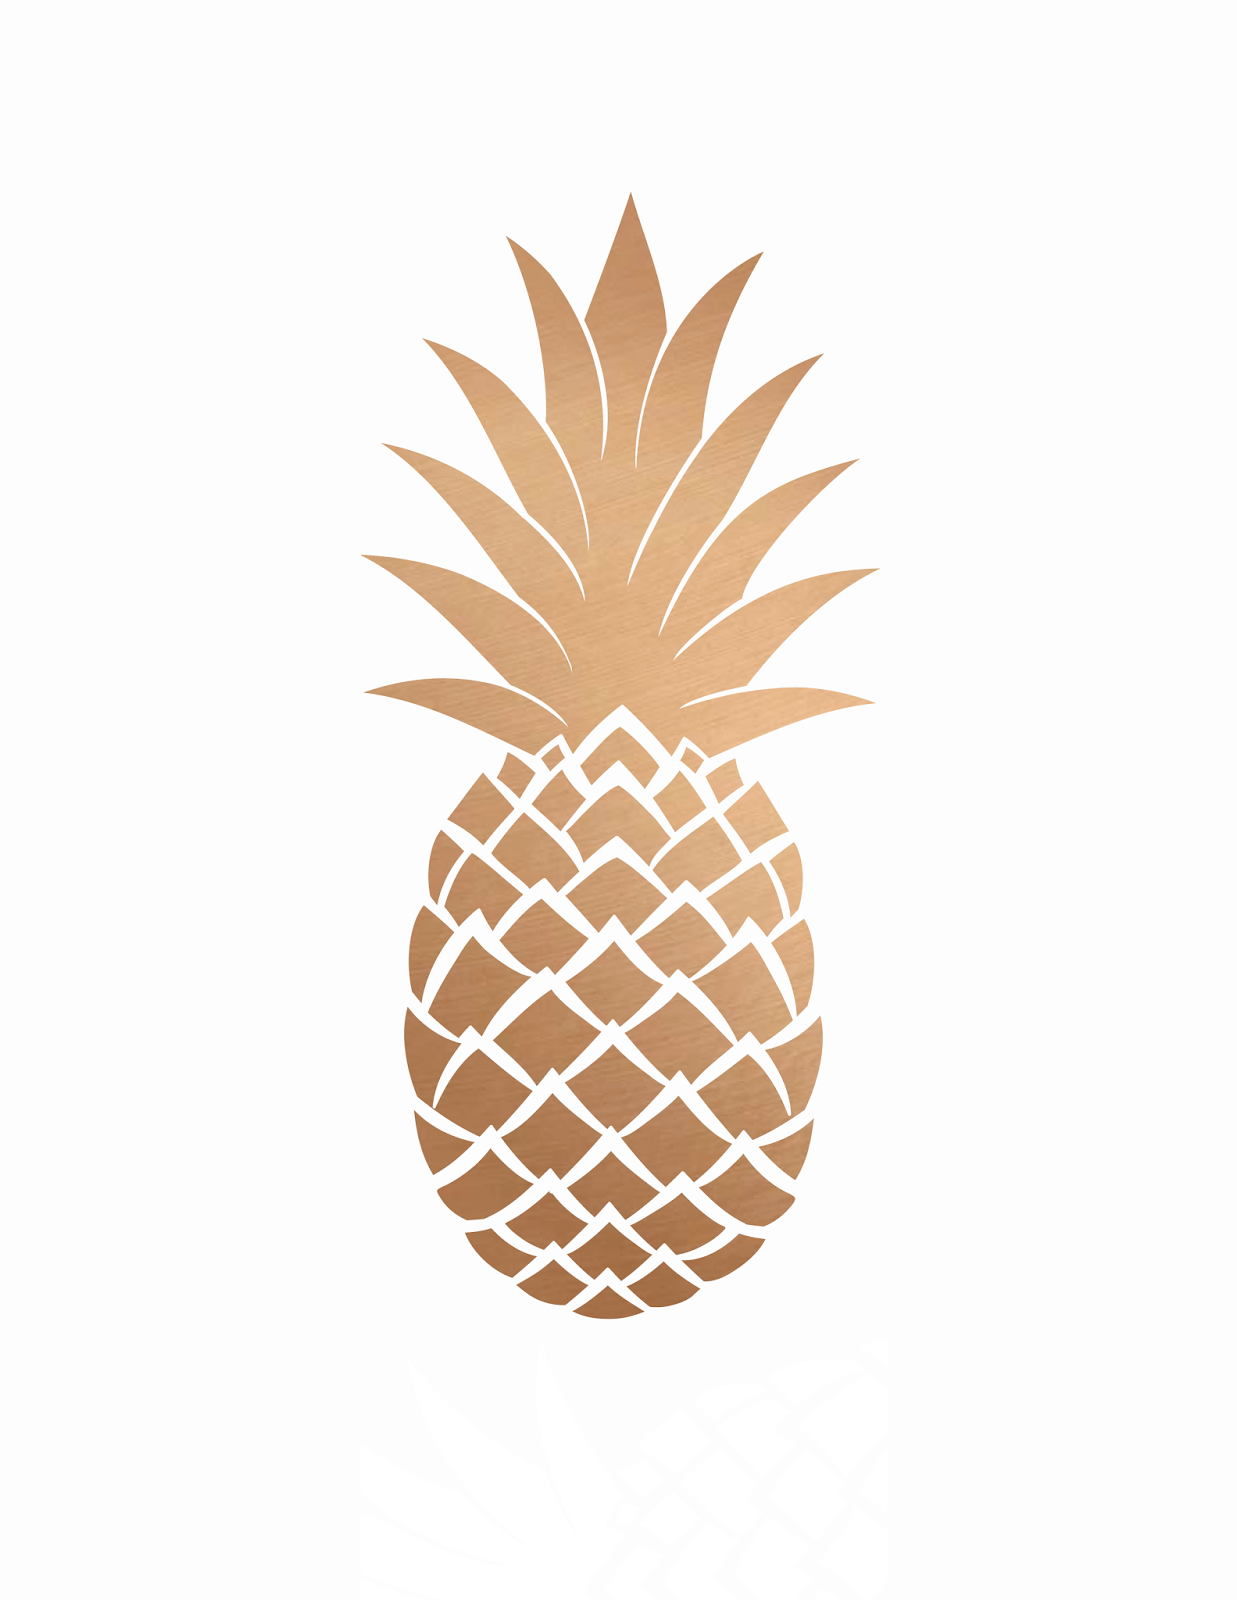 4 Images of Cute Pineapple Printable